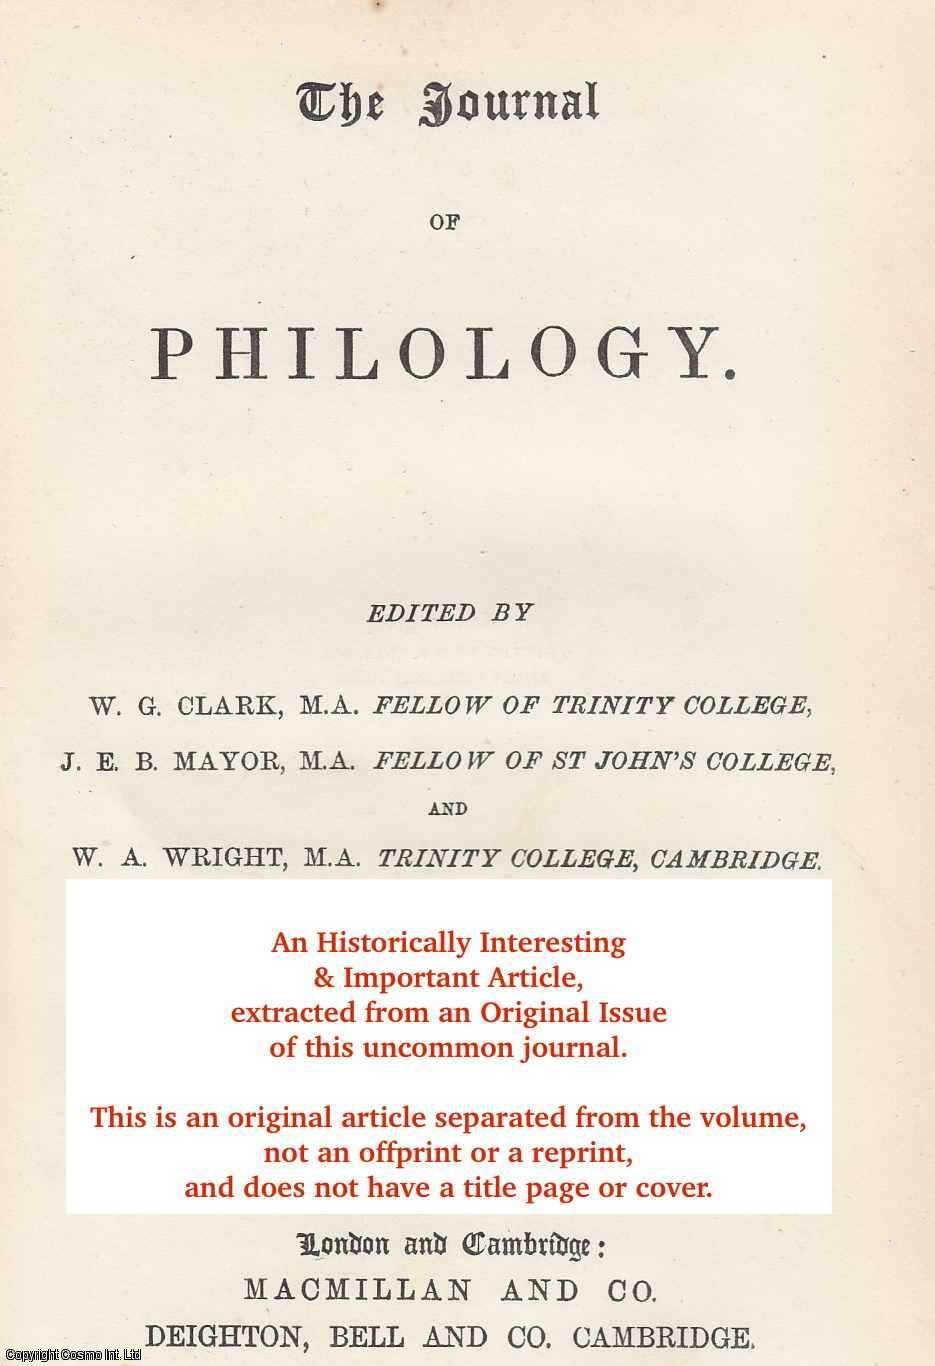 THOMPSON, W. H. - The Genuineness of The Sophist of Plato, and on some of its Philosophical Bearings. An original article from the The Journal of Philology 1879.